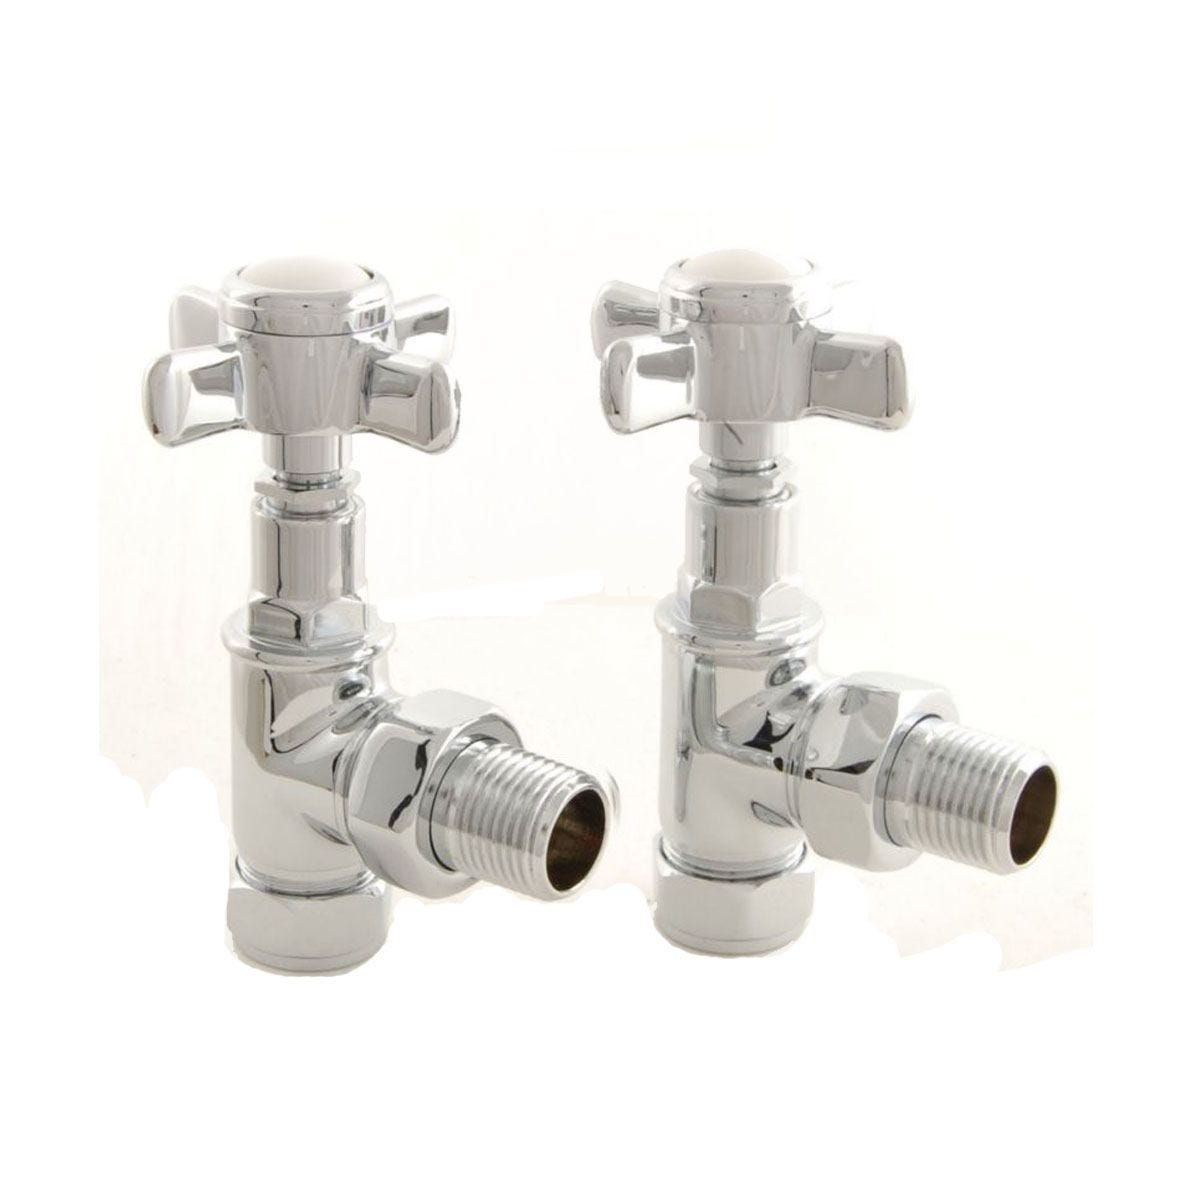 Heating Style Period Cross Head Angled Radiator Valves Pair - Chrome